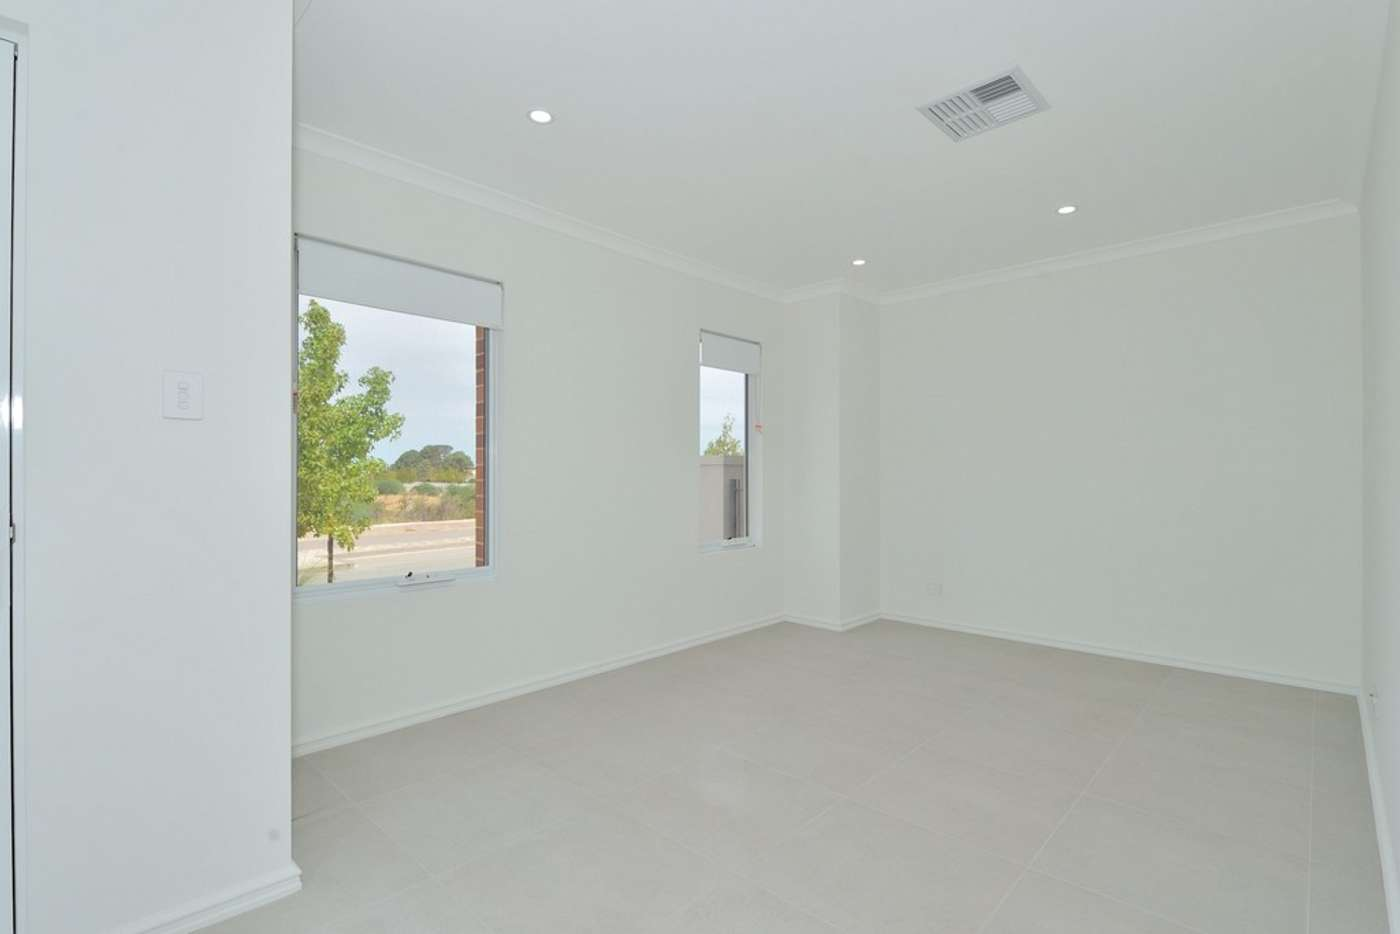 Sixth view of Homely other listing, 81 Ellen Stirling Parade, Ellenbrook WA 6069